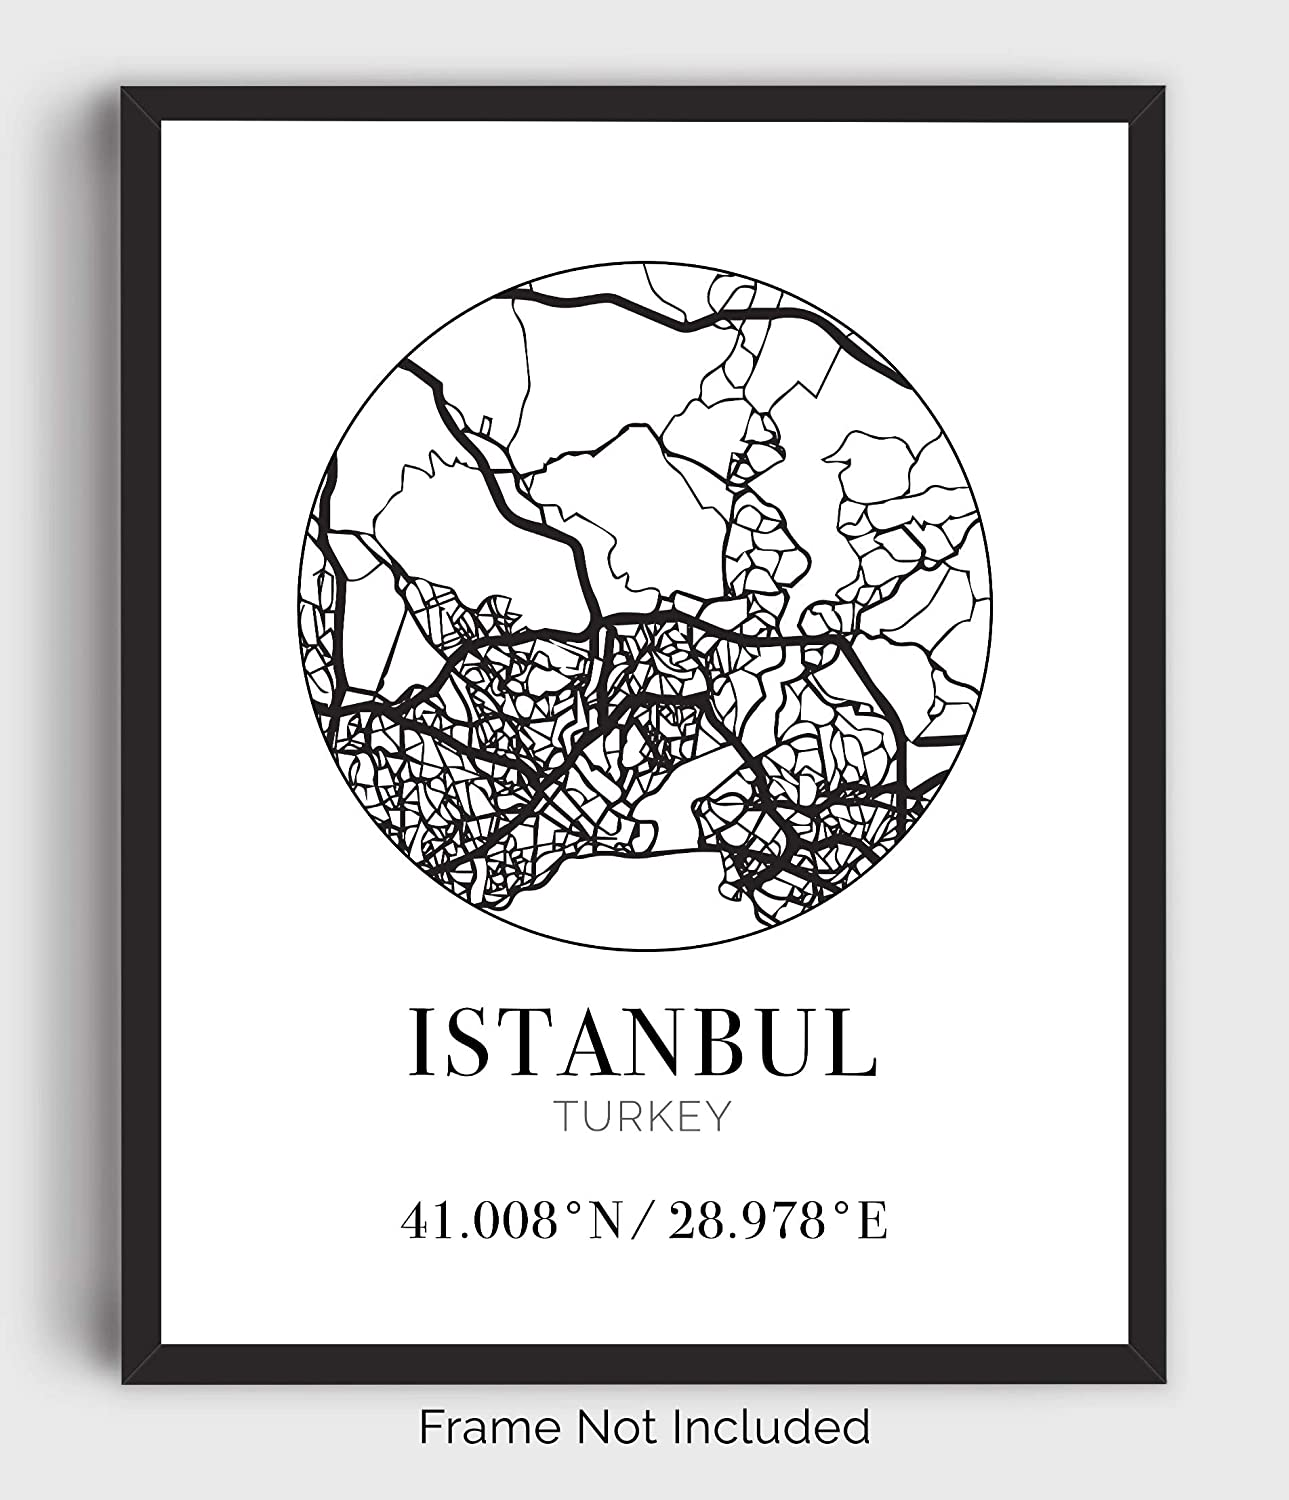 Istanbul Turkey Street Map Wall Art - 11x14 Modern Abstract Black & White Aerial View Decor Print with Coordinates. Makes a great Turkish-Themed Gift.